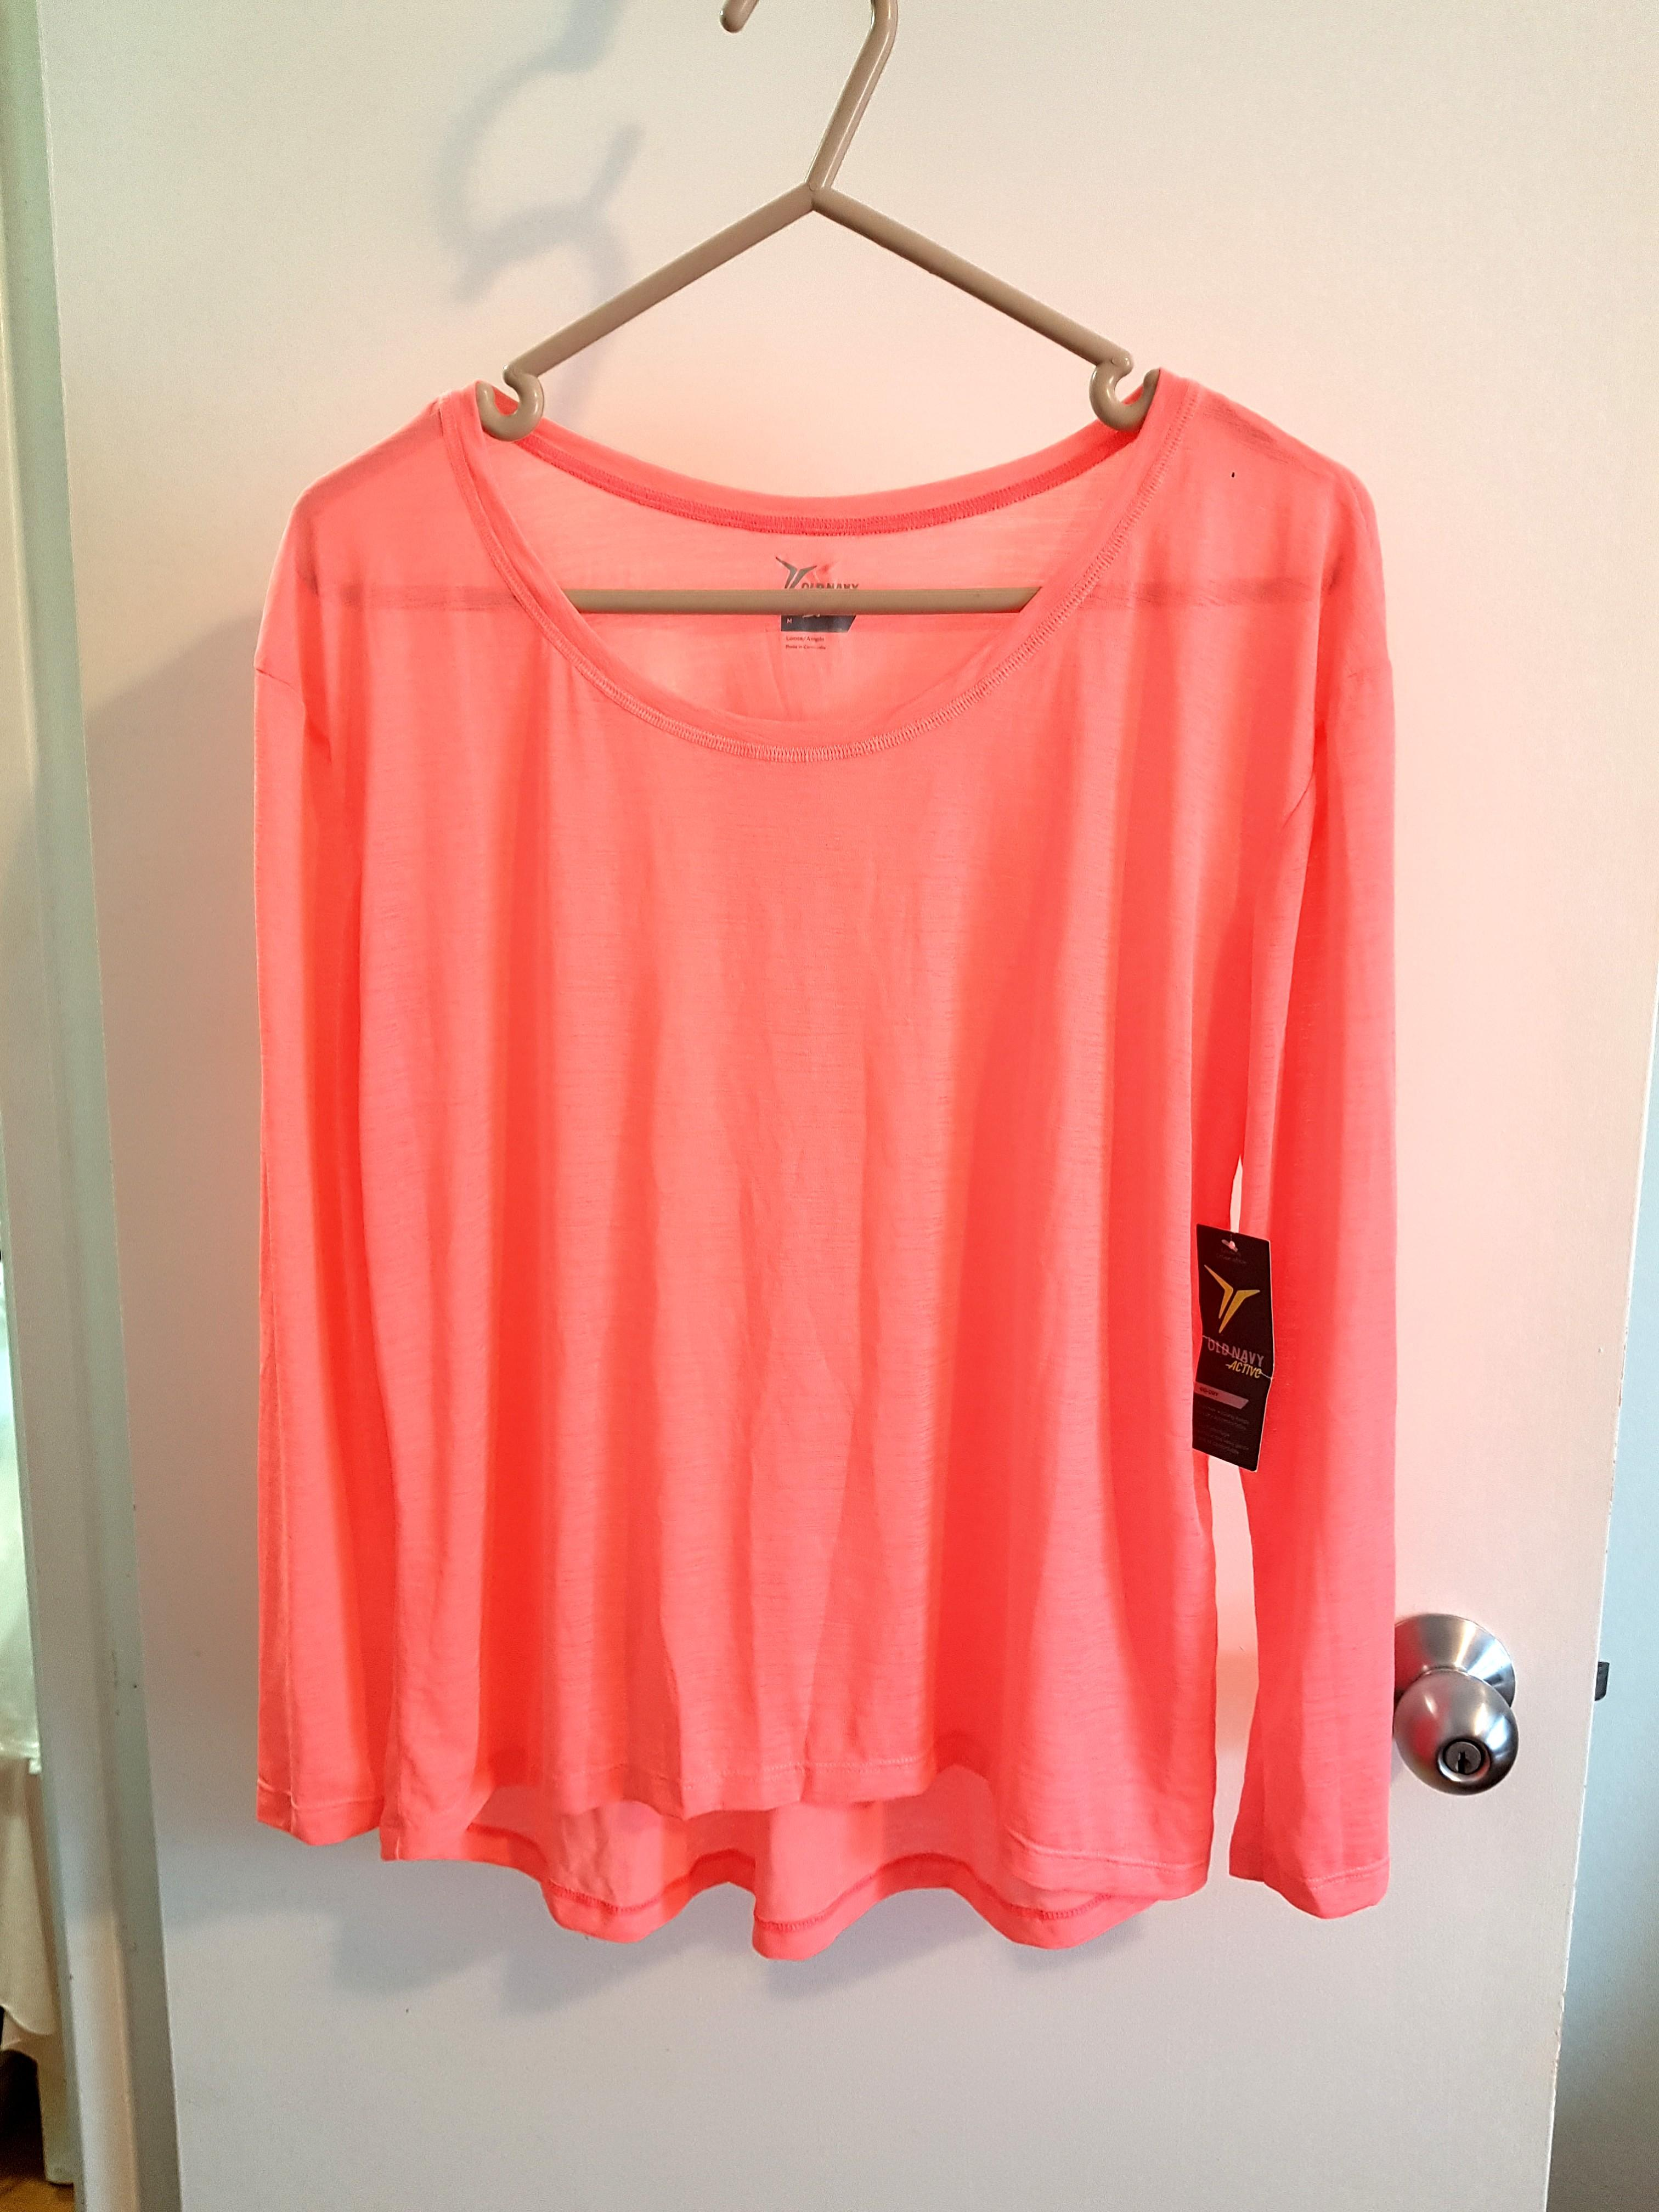 BNWT Old Navy Active top, bright peach